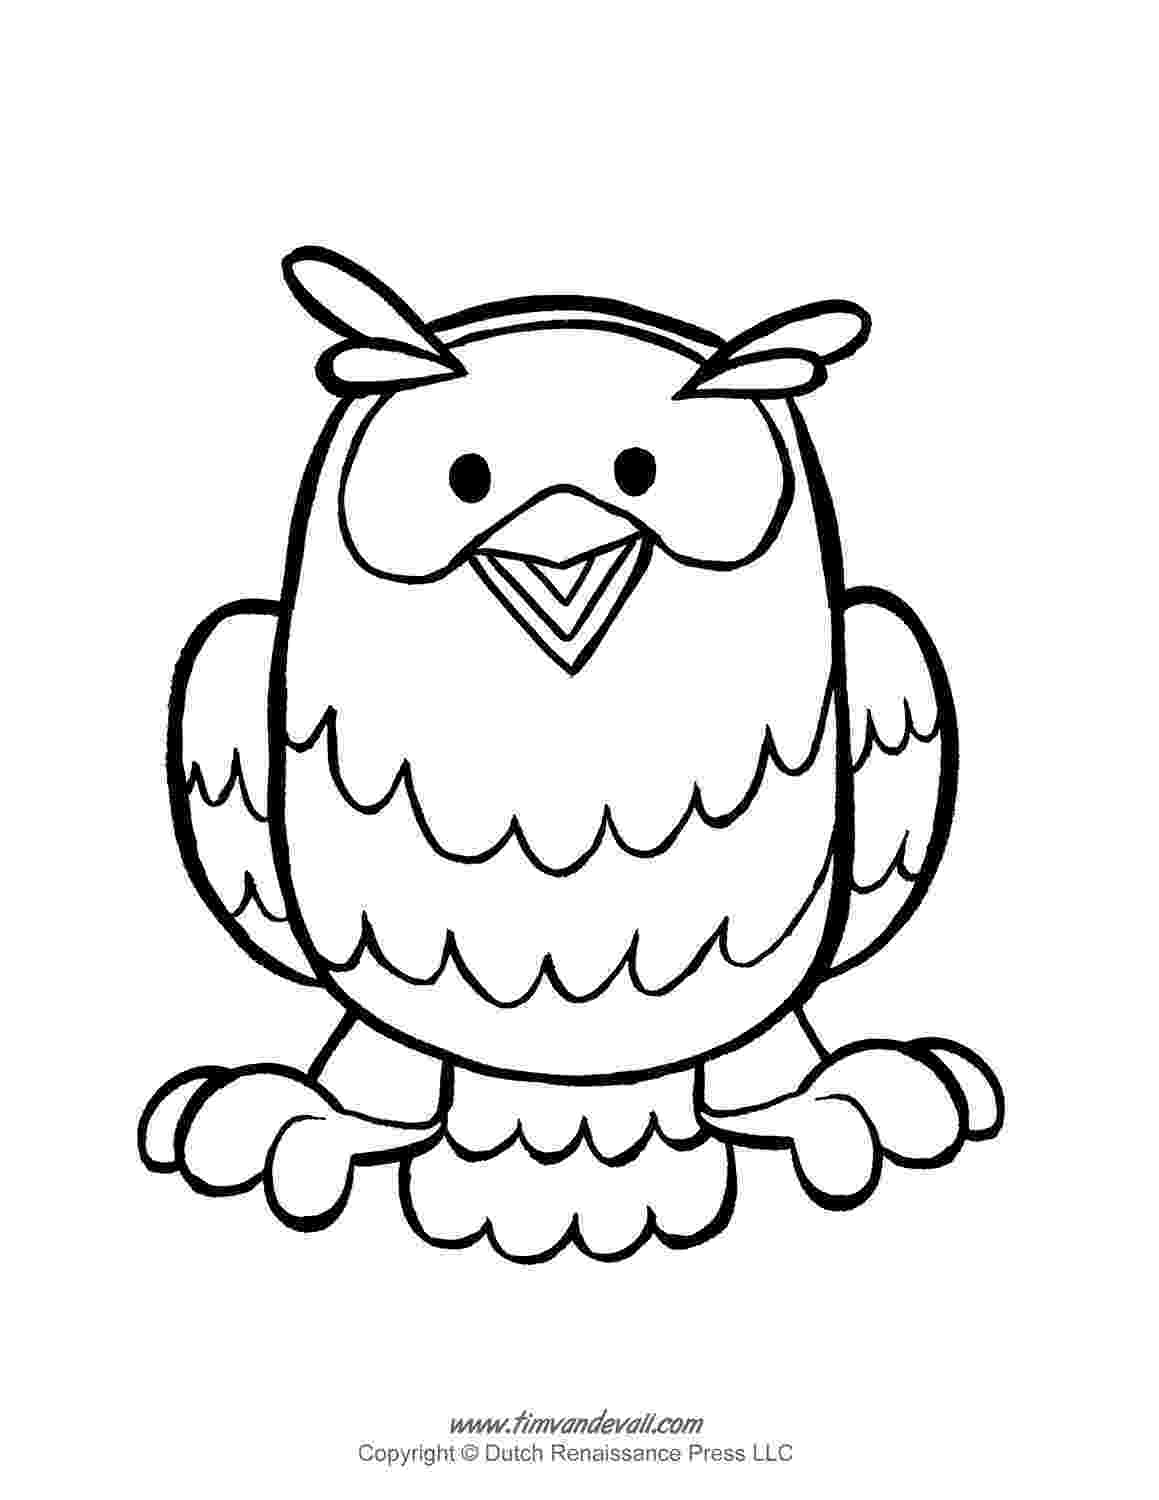 printable owl images owl coloring pages print free printable cute owl coloring printable images owl